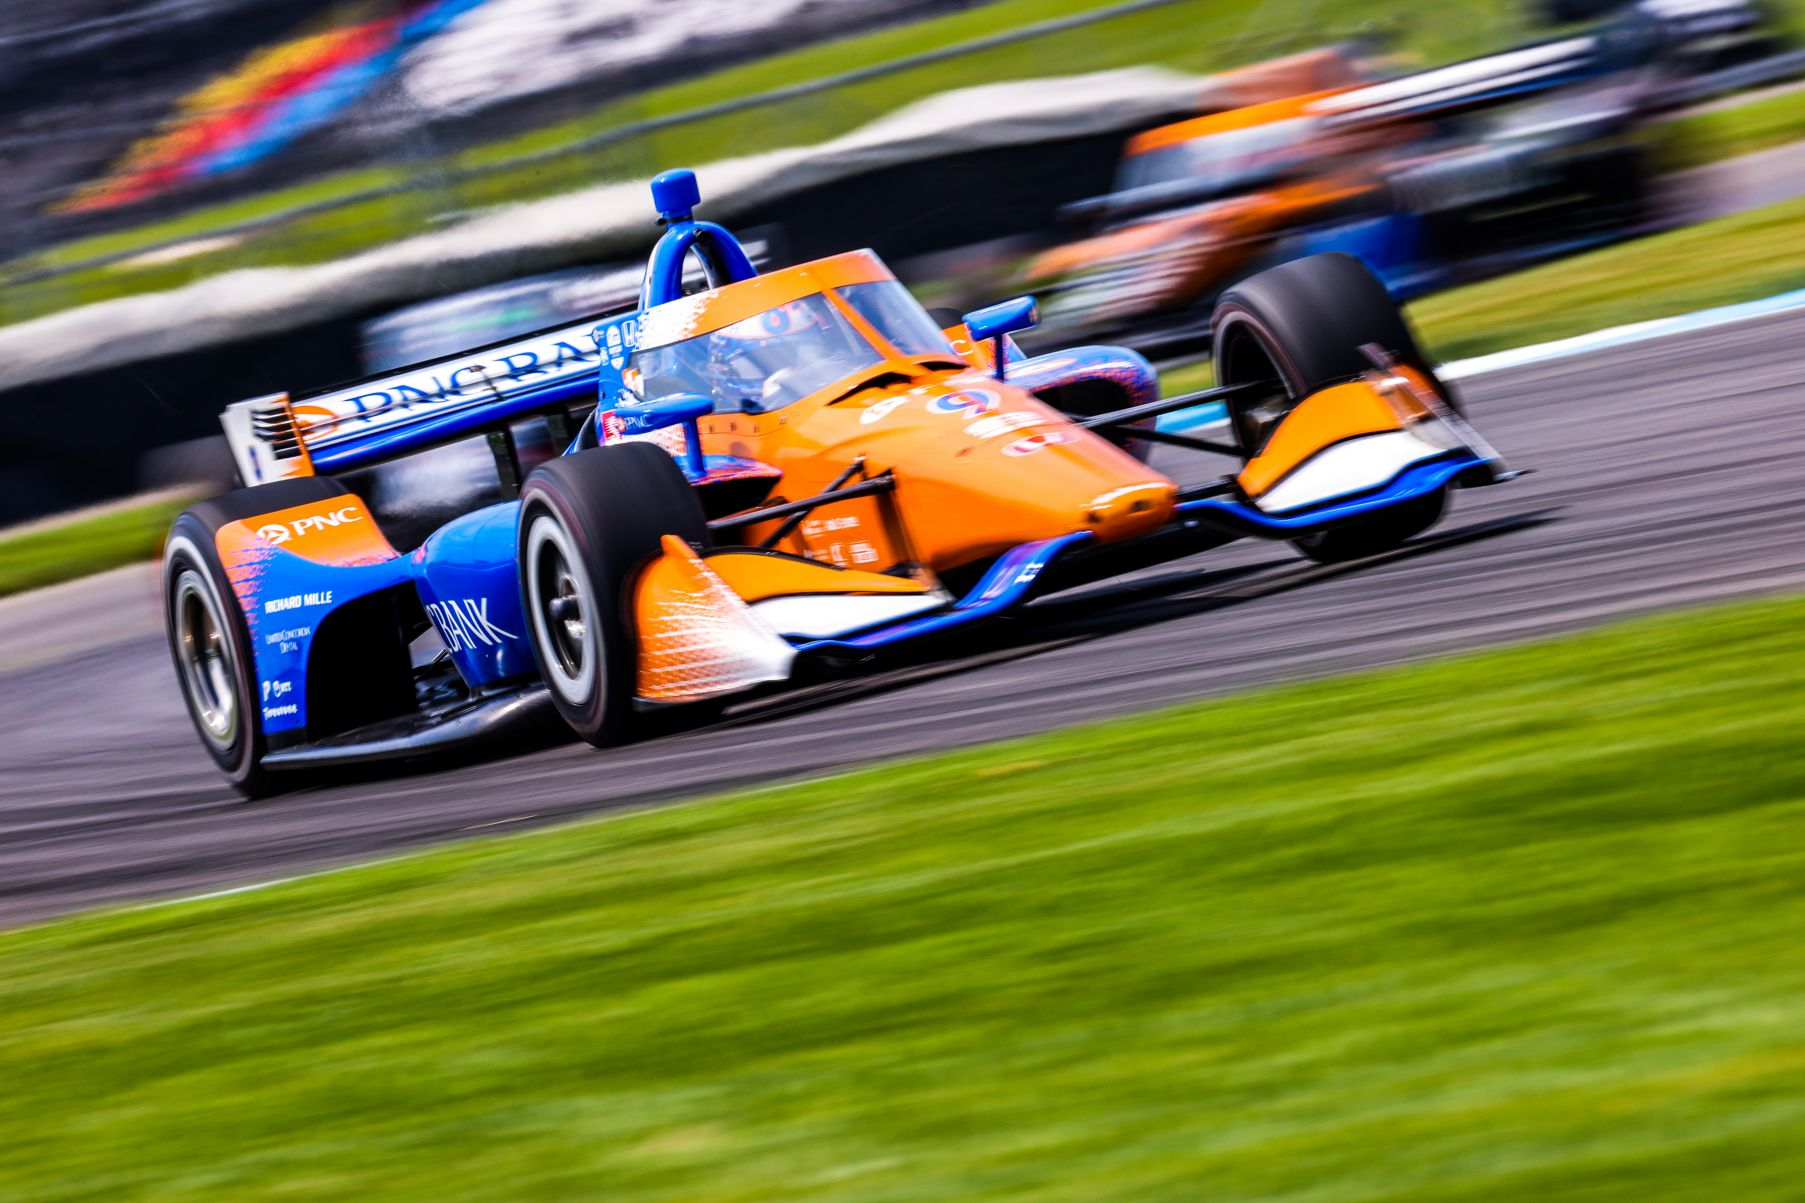 Scott Dixon speeds to the lead in the GMR Grand Prix. © [Andy Clary/ Spacesuit Media]